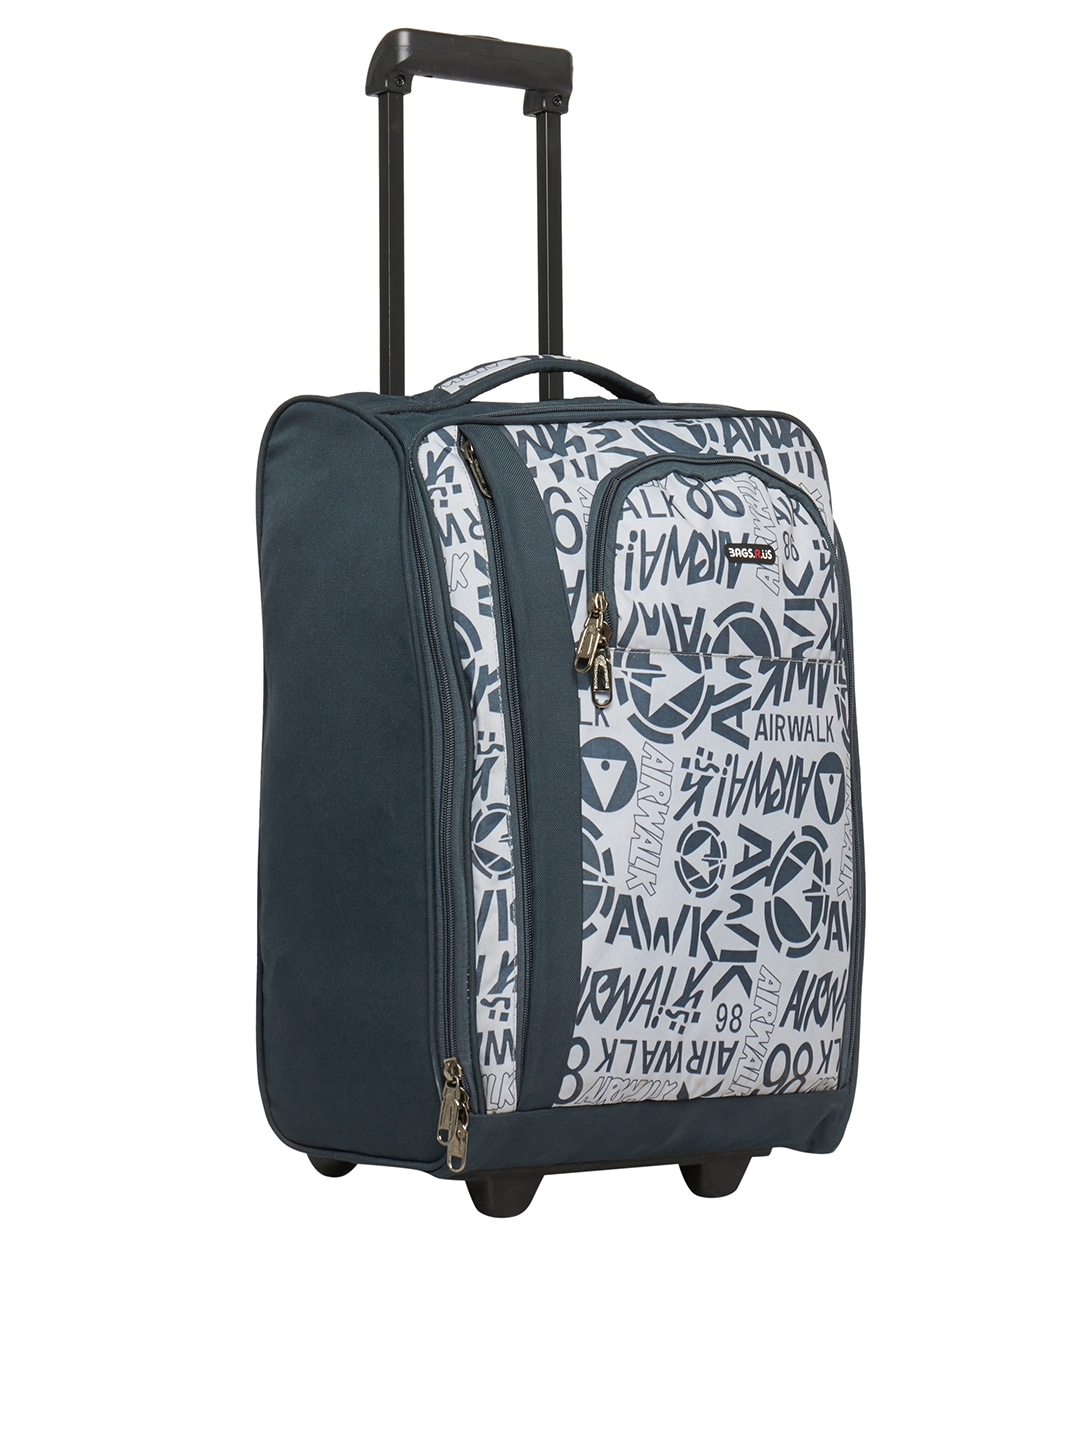 Trolley Bags - Buy Luggage Bags Online in India